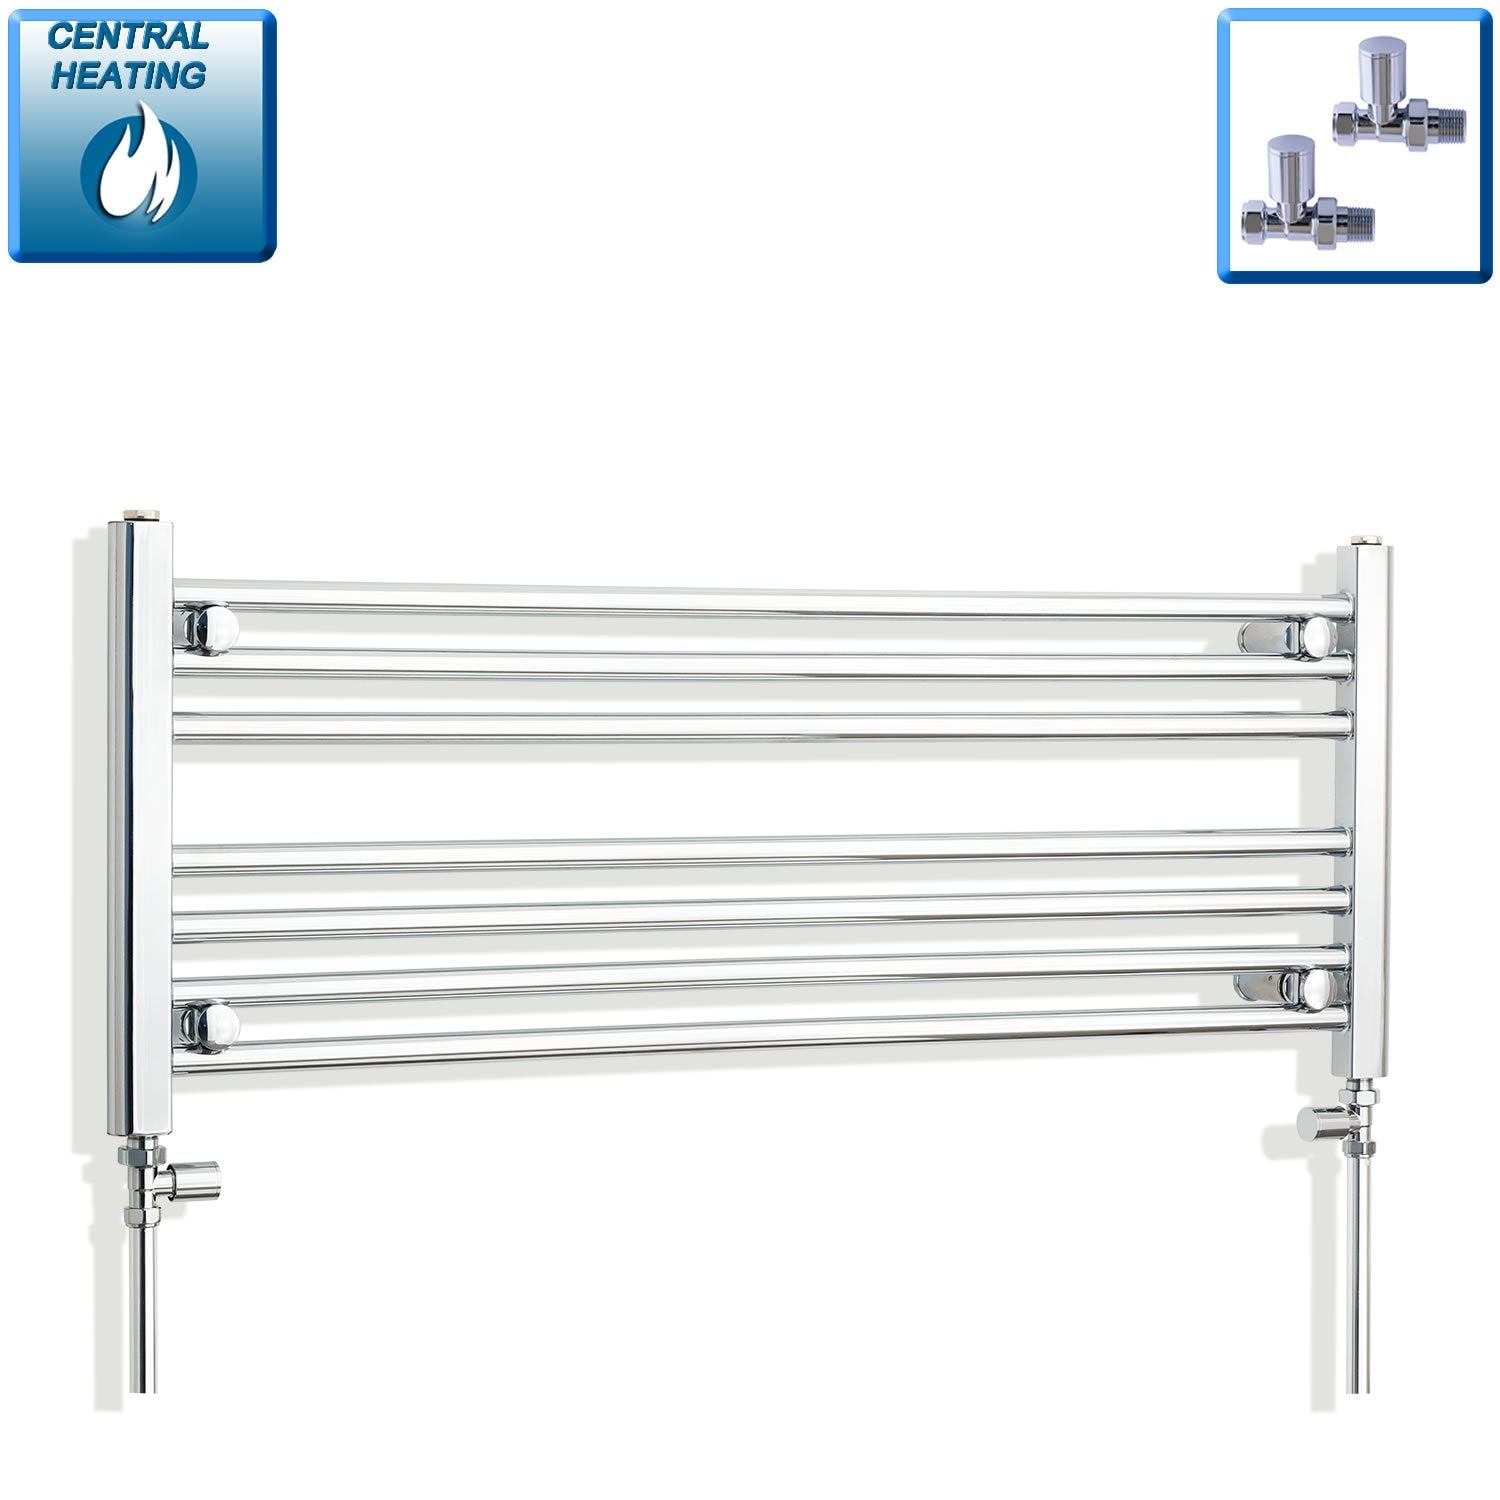 1100mm Wide 400mm High Flat Chrome Heated Towel Rail Radiator HTR,Towel Rail Only